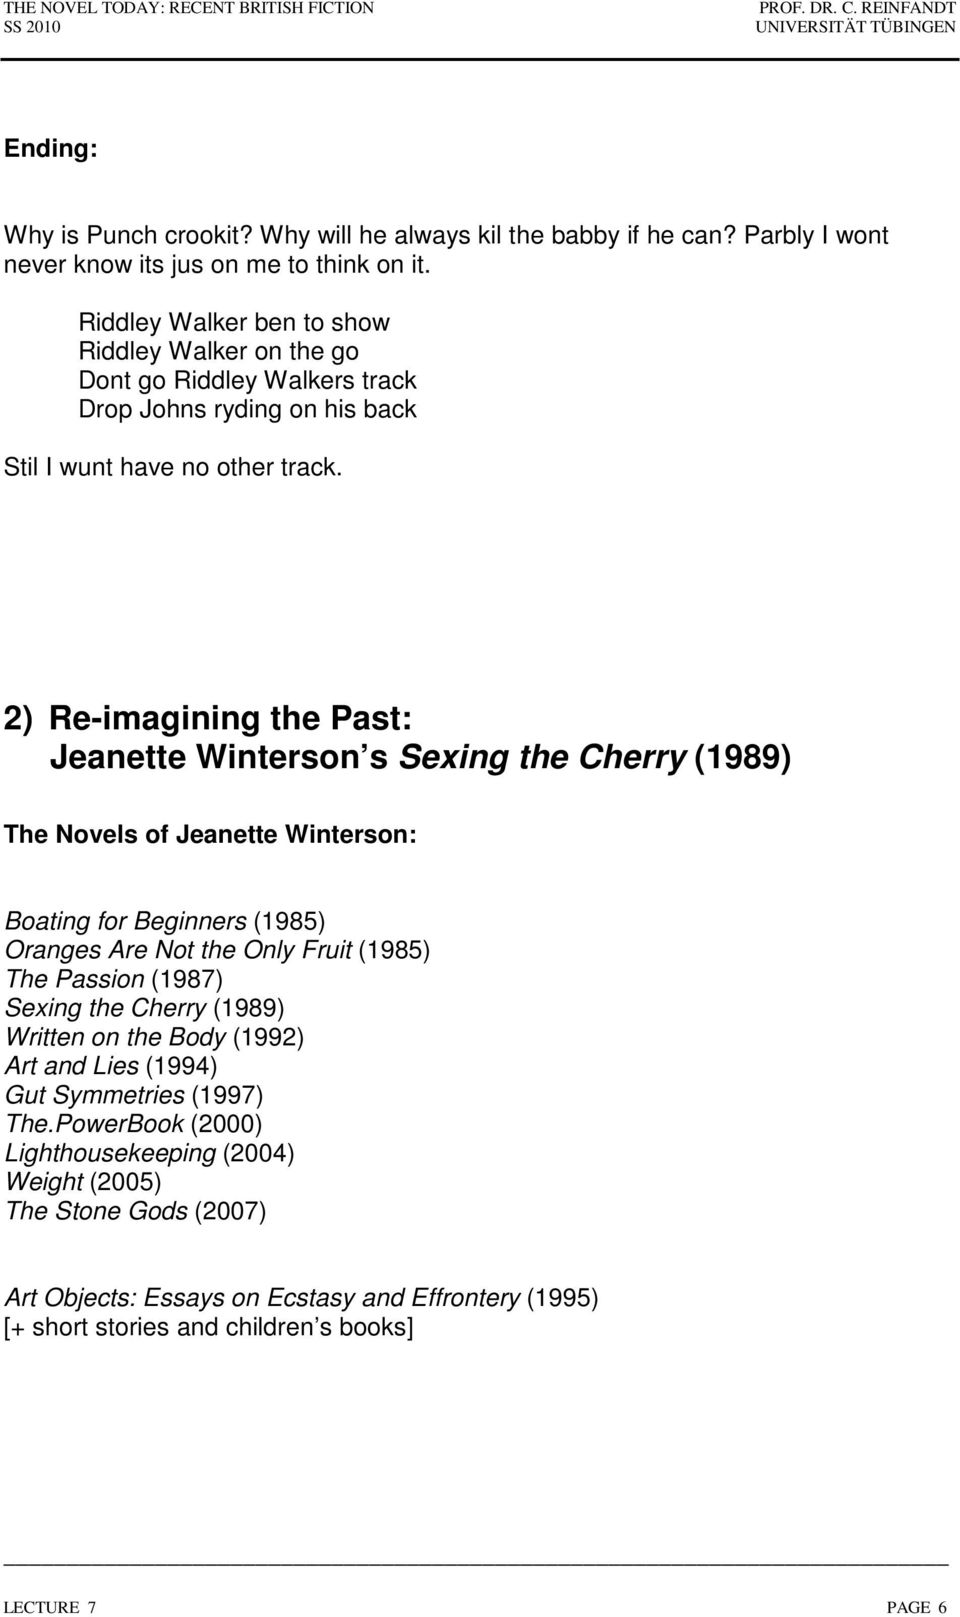 2) Re-imagining the Past: Jeanette Winterson s Sexing the Cherry (1989) The Novels of Jeanette Winterson: Boating for Beginners (1985) Oranges Are Not the Only Fruit (1985) The Passion